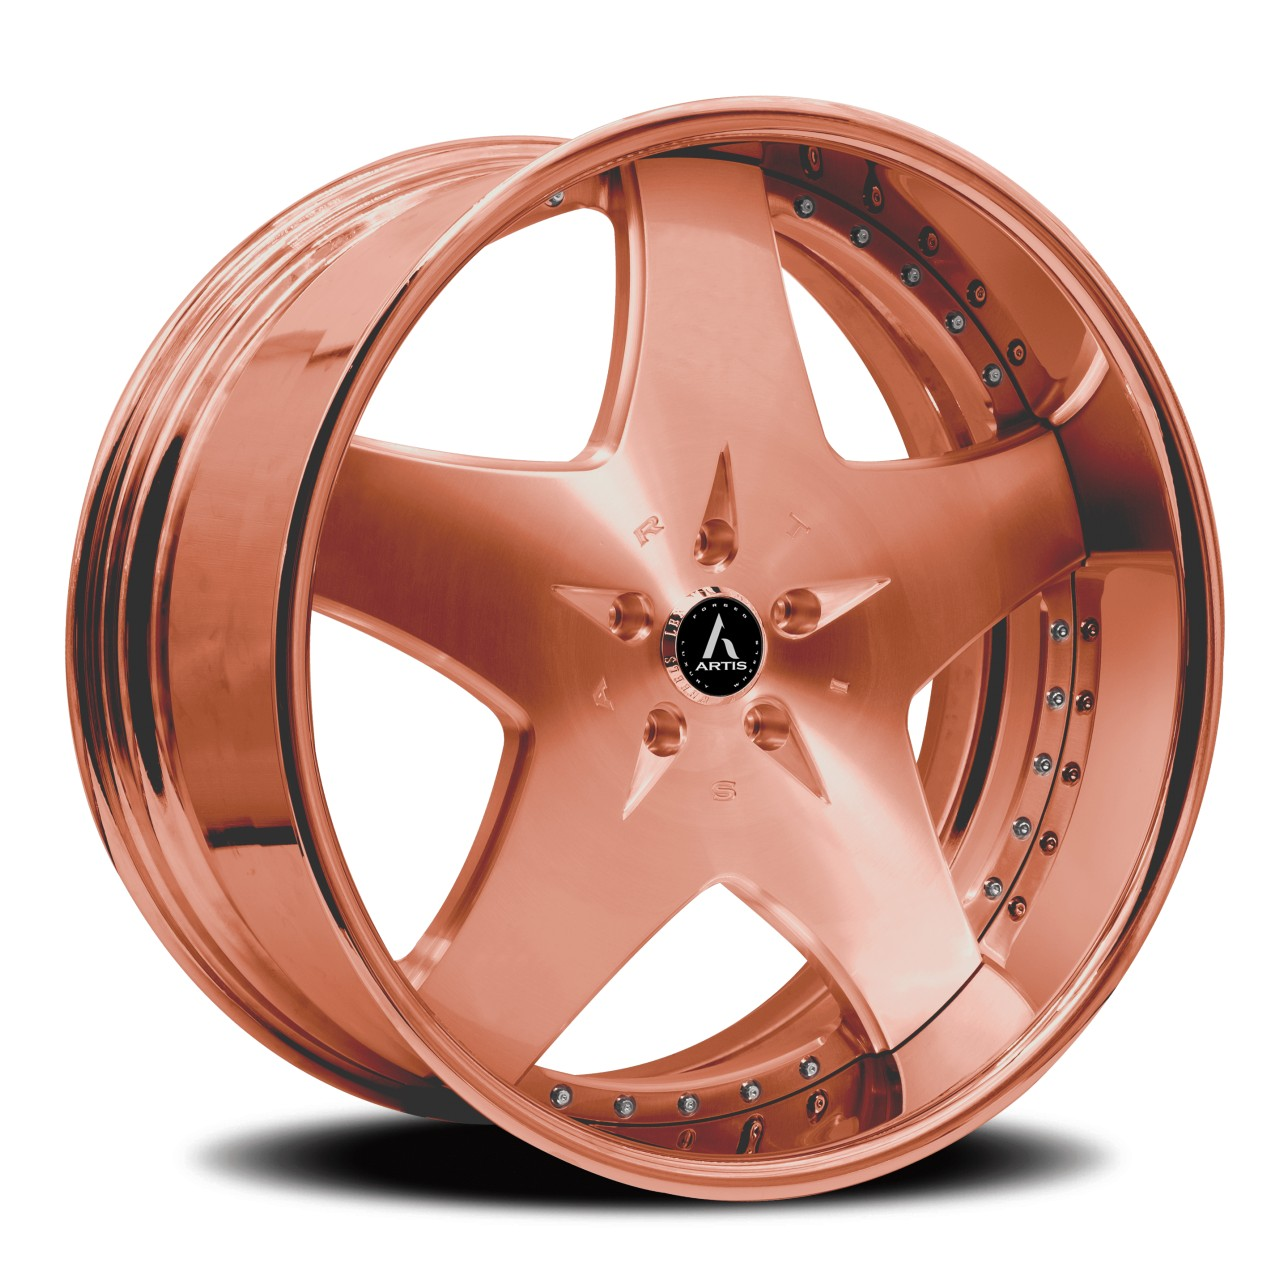 Artis Forged Cashville wheel with Rose Gold finish